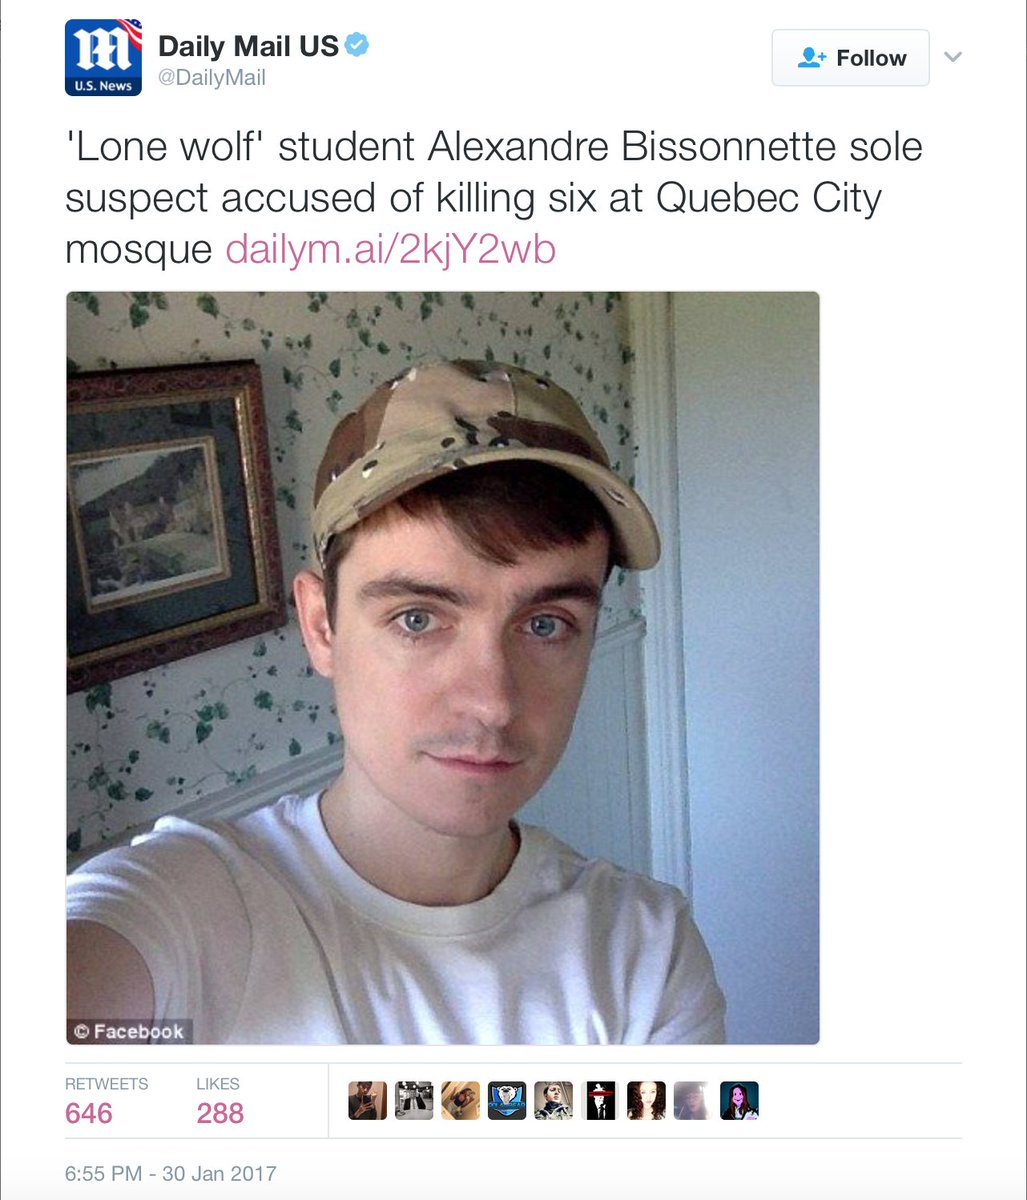 He. Is. A. Terrorist. Not. A. Lone. Wolf.